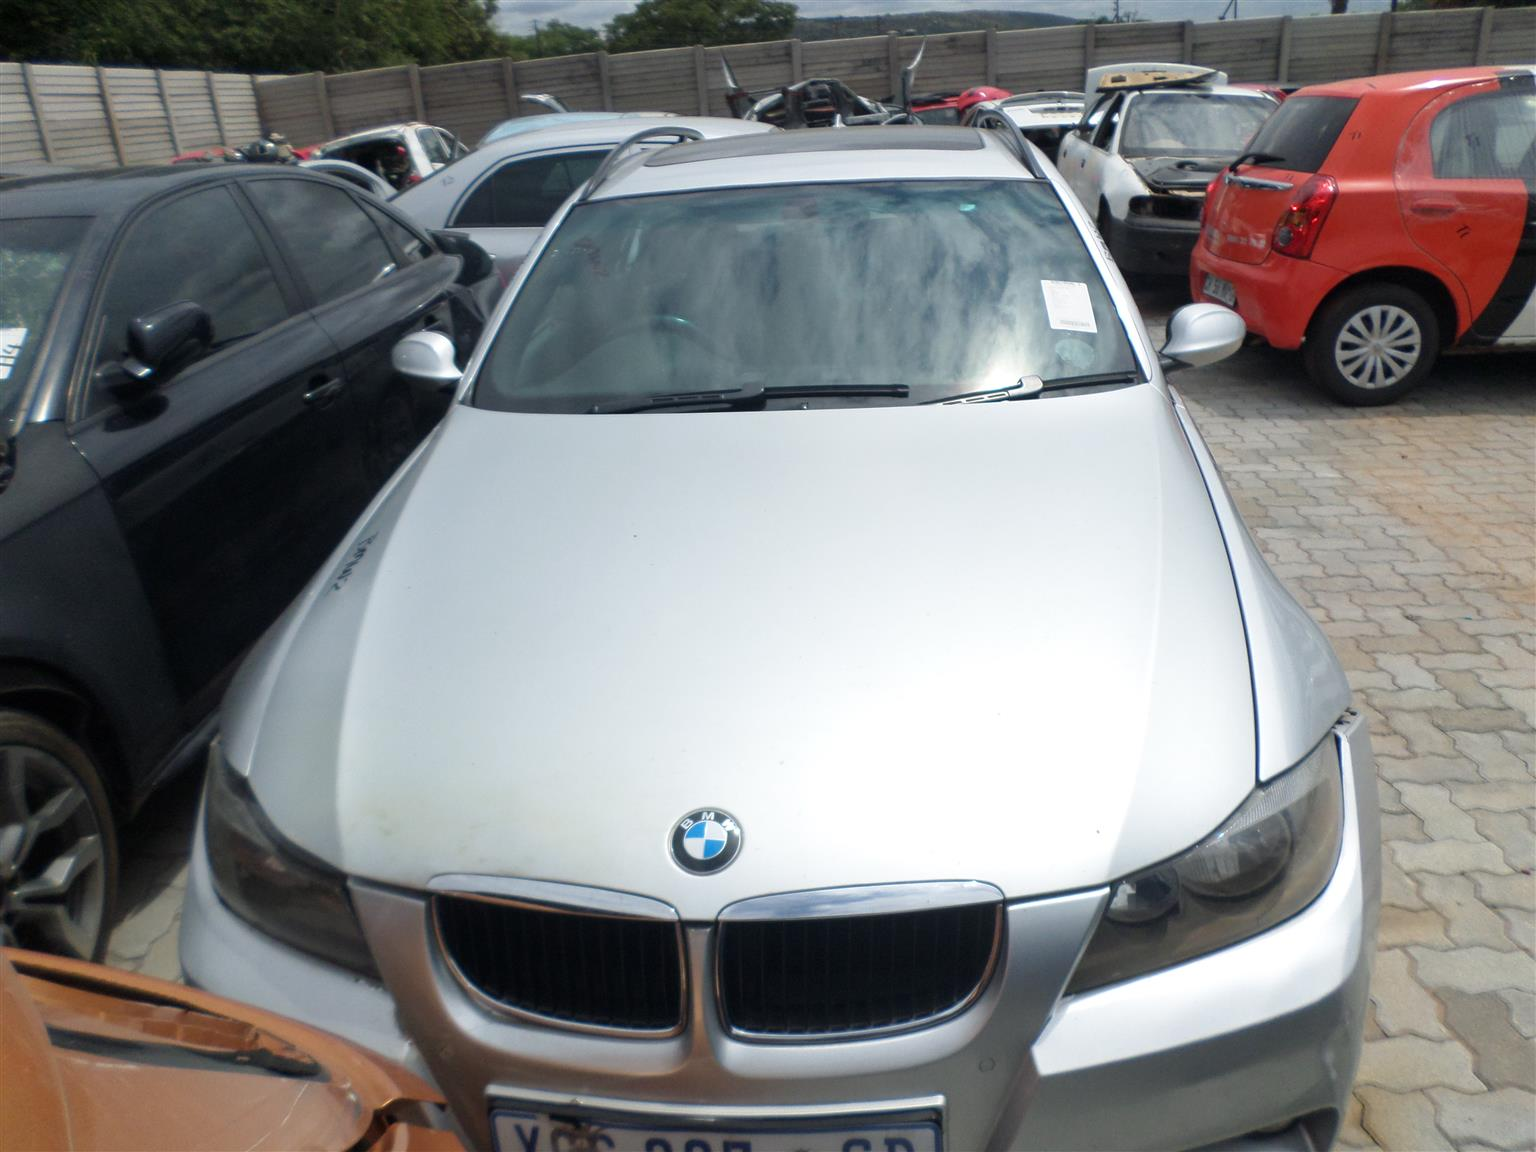 BMW 320i M Line E91 s/wagon 2008 now for stripping of all parts.